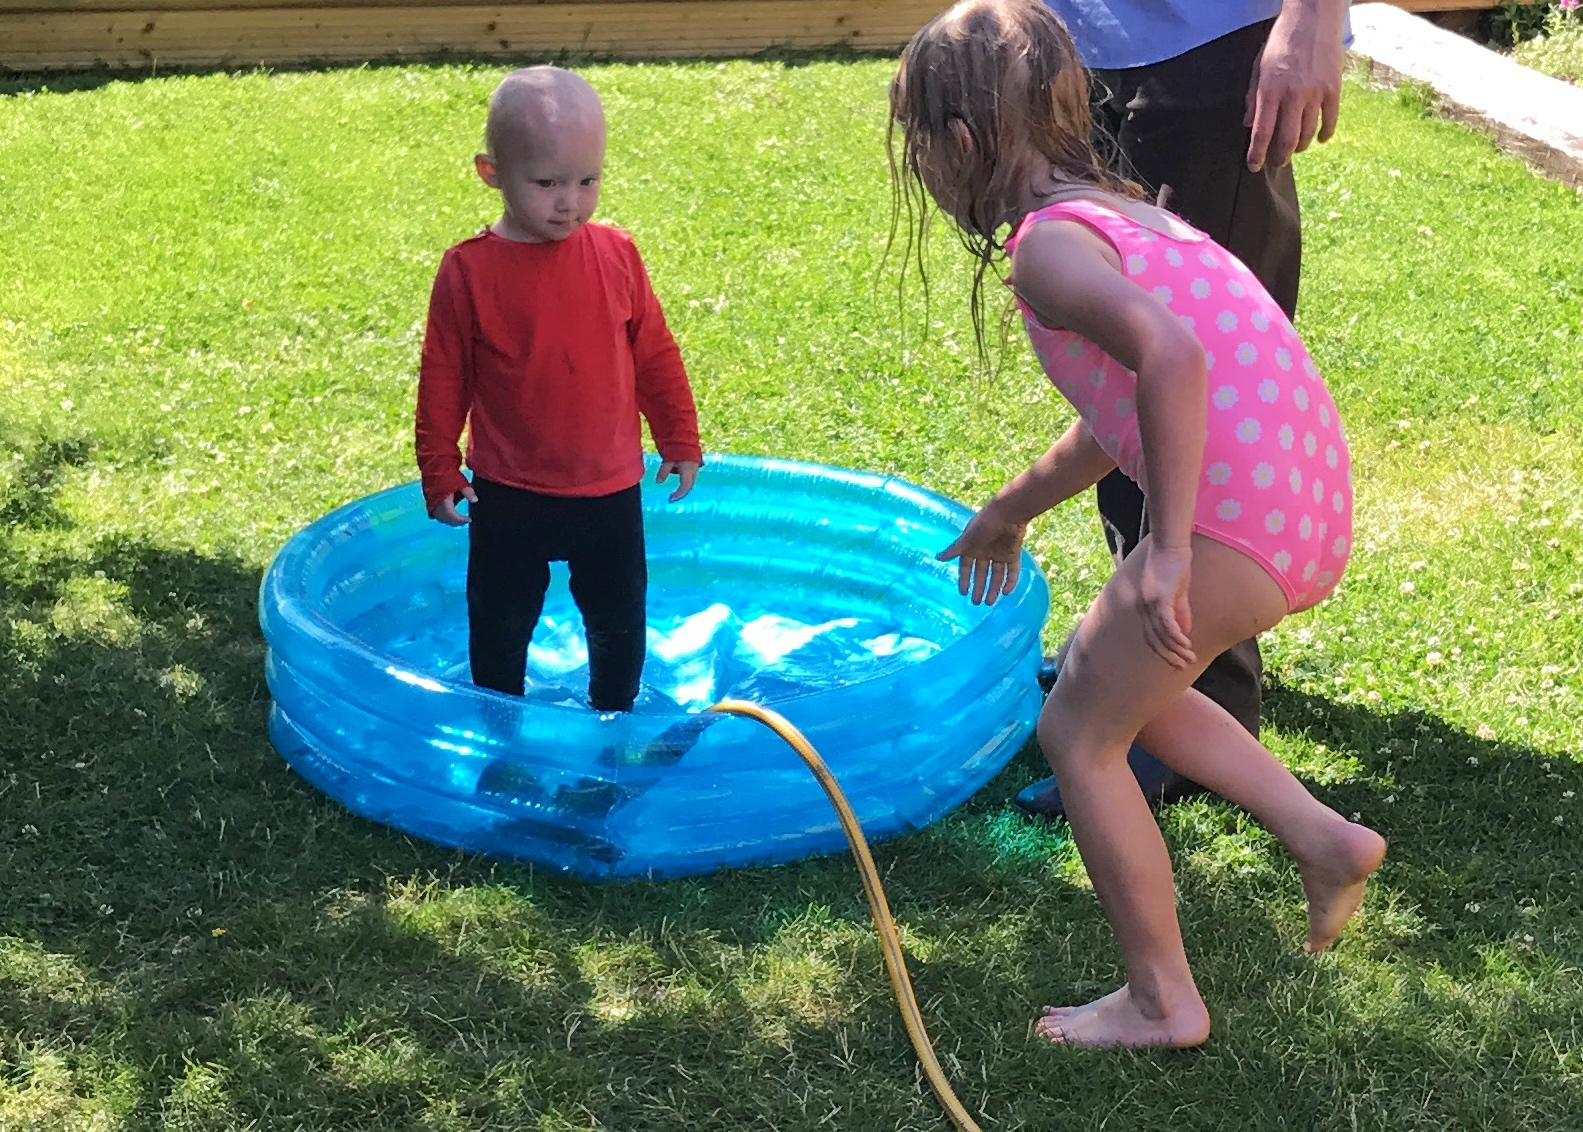 Filling a small paddling pool with a hose while a toddler stands in it fully clothed